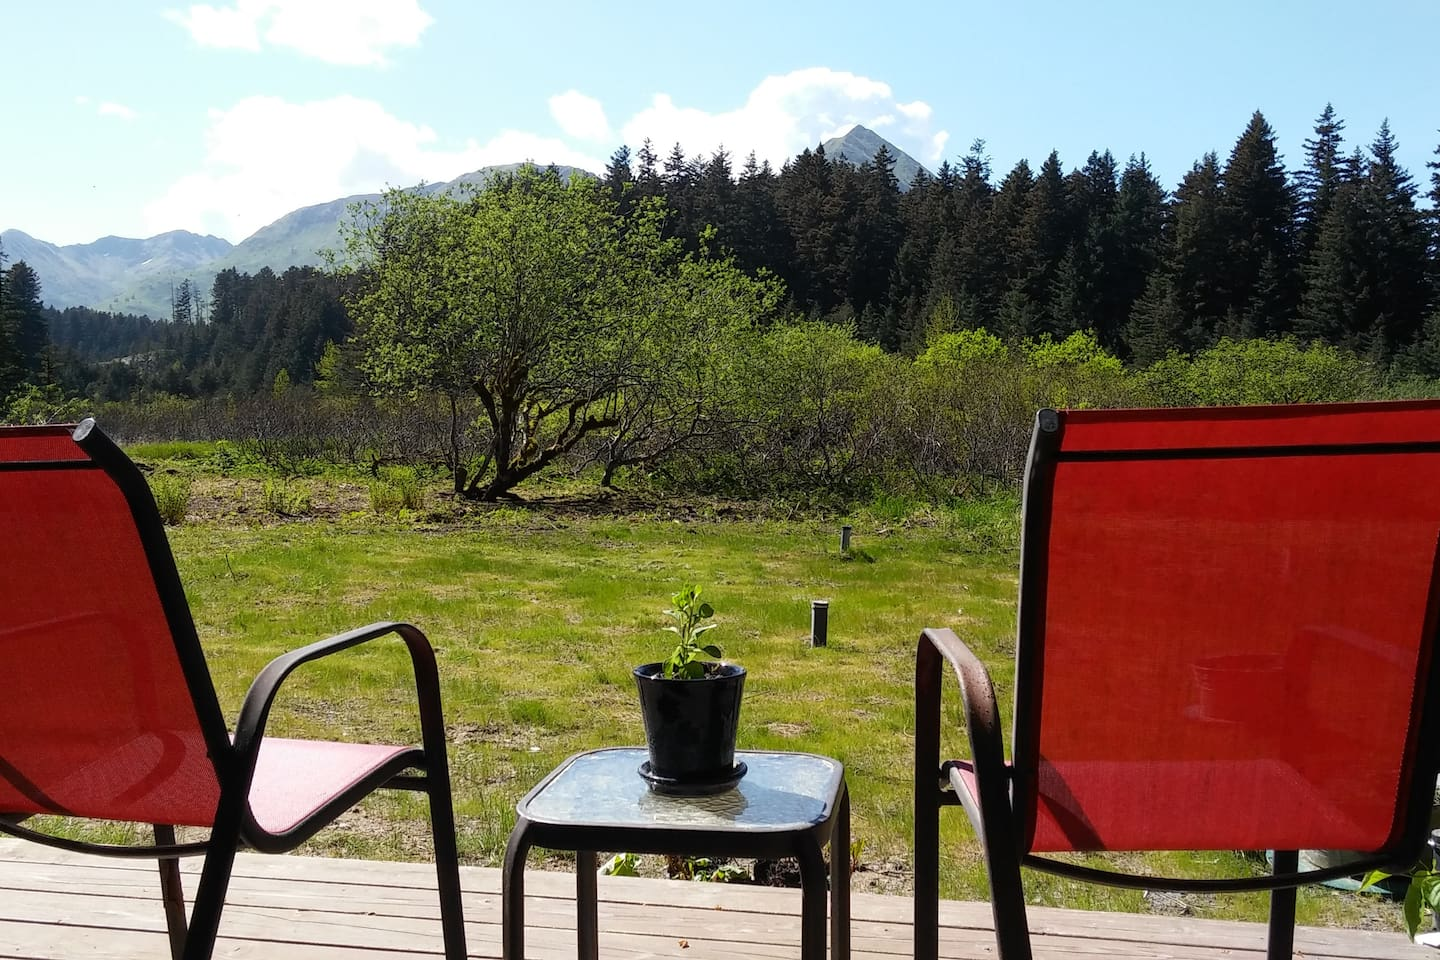 Enjoy the view of Three Sisters ridgeline from your sunny deck.